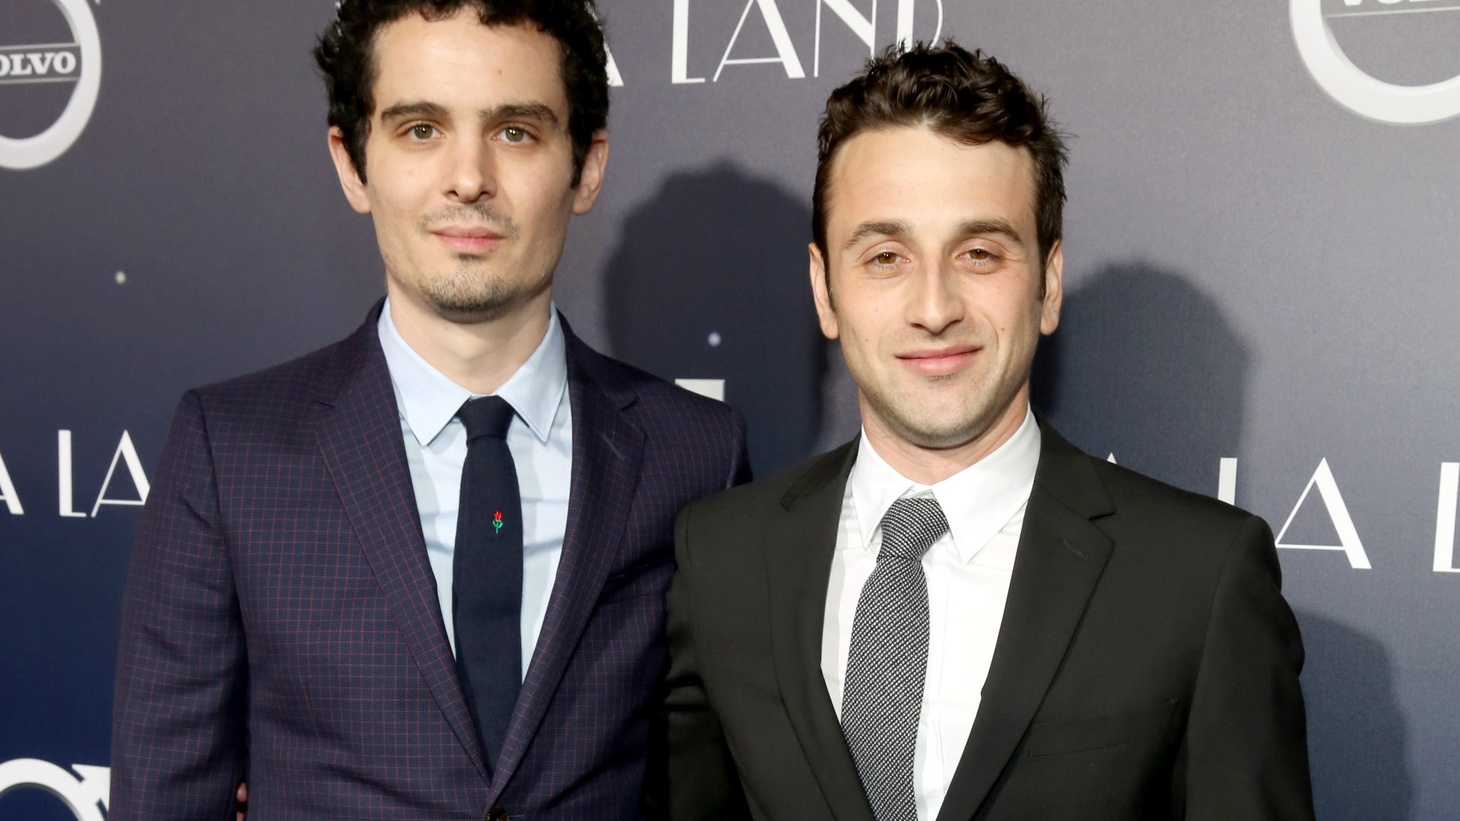 Writer-director Damien Chazelle and composer Justin Hurwitz have been friends and collaborators since first meeting at Harvard. Together, they struggled for years to make an original movie-musical. Now, their film La La Land is up for a record-tying 14 Oscar nominations.